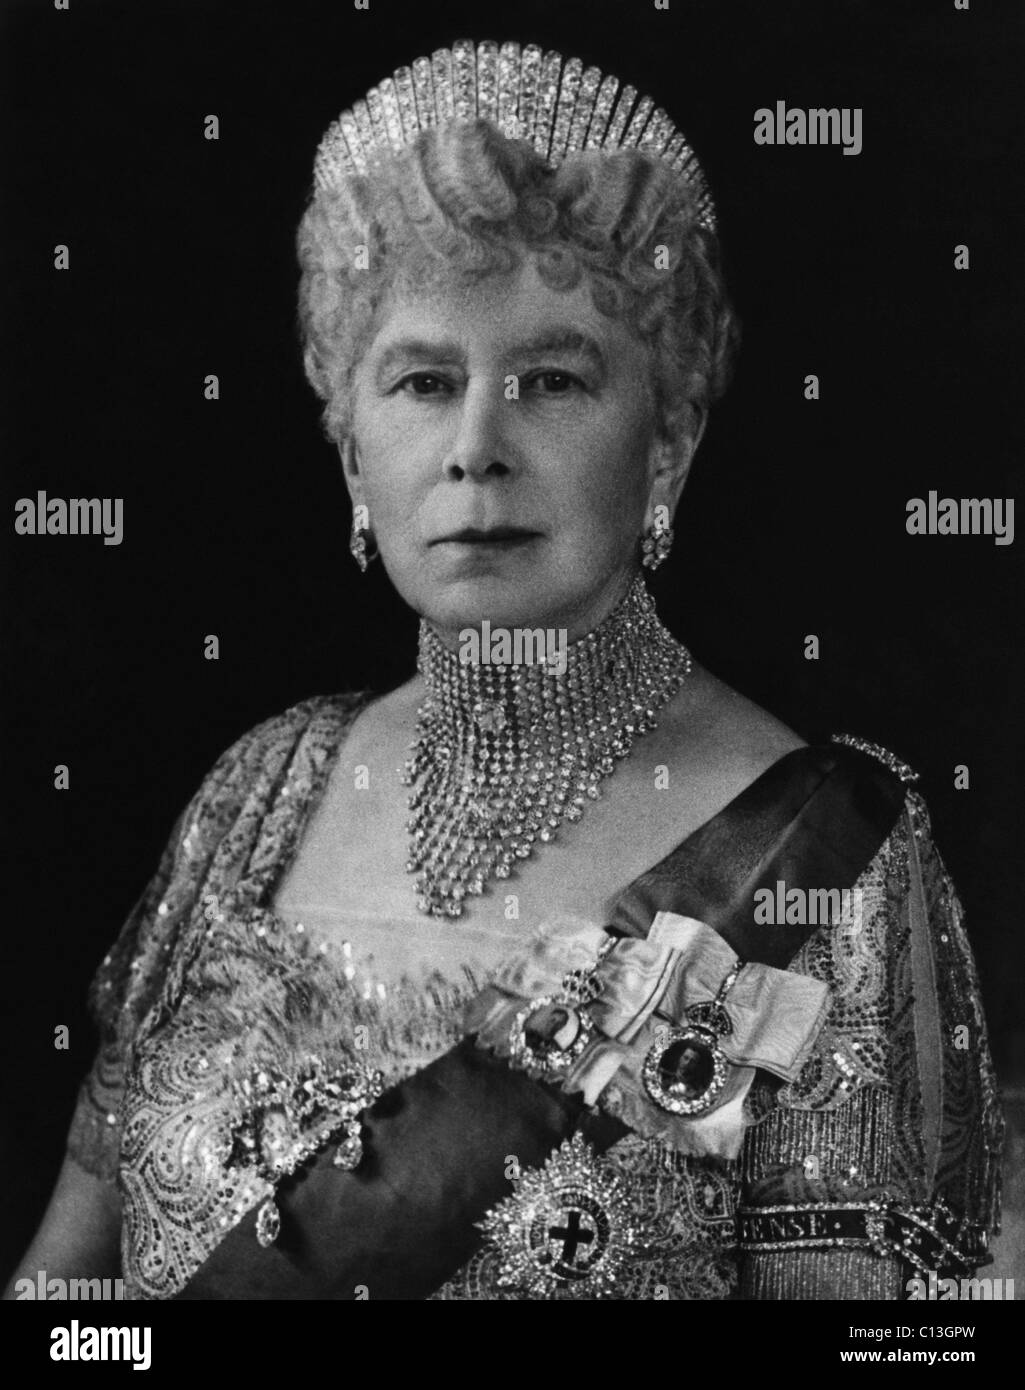 British Royalty. British Queen Mary of Teck, 1947. - Stock Image